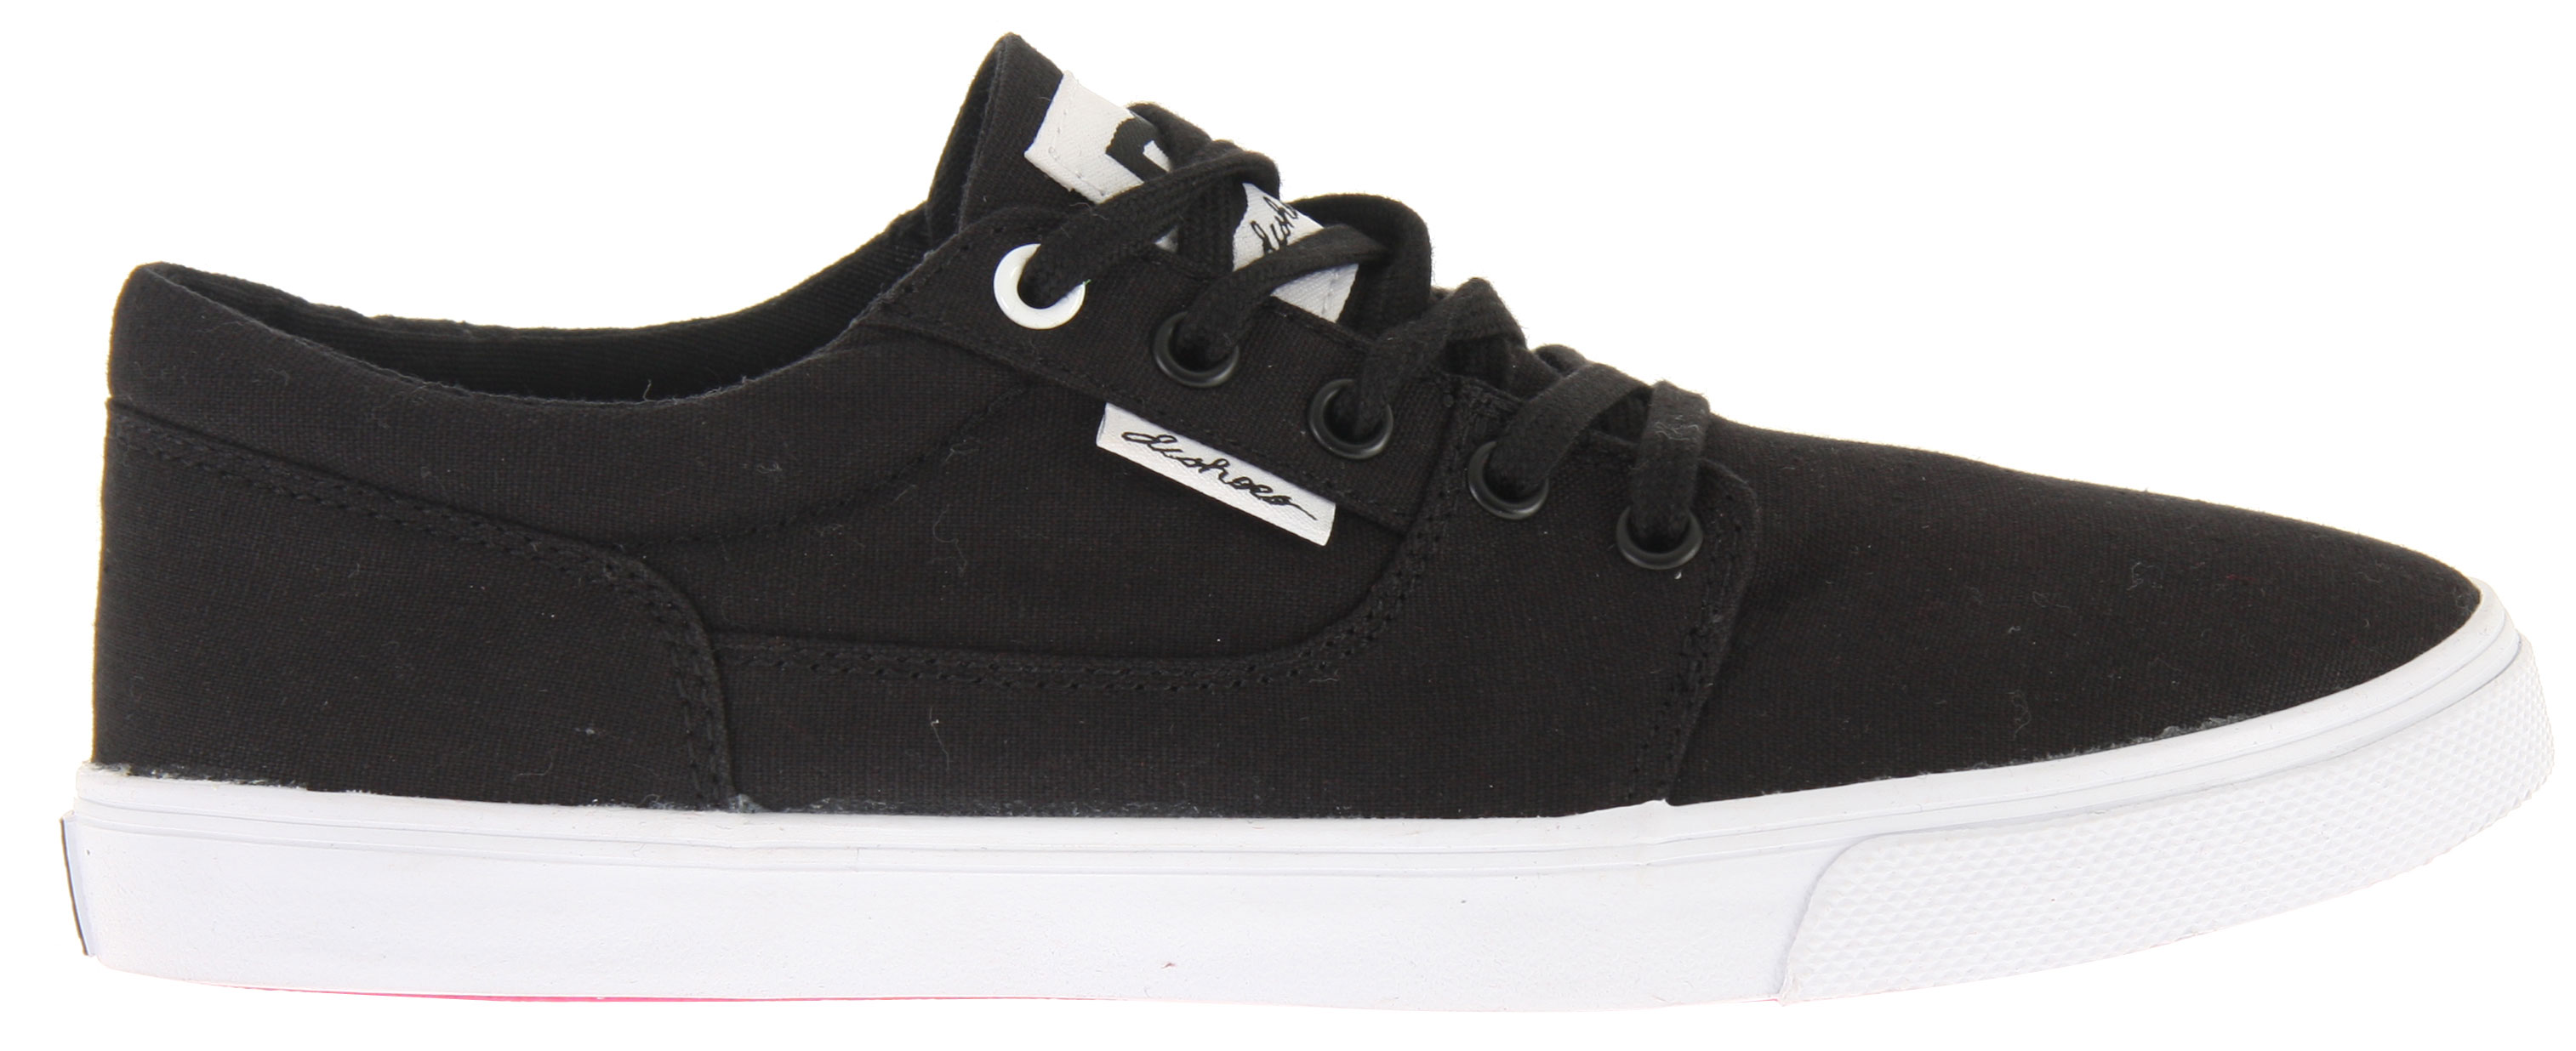 "Skateboard Key Features of the DC Bristol Canvas Skate Shoes: Classic Skateboarding style Canvas upper for comfort Vulcanized construction DC ""Pill Pattern"" sole for functionality Super sticky outsole DC logo tab and tongue Foam padded tongue and collar - $28.95"